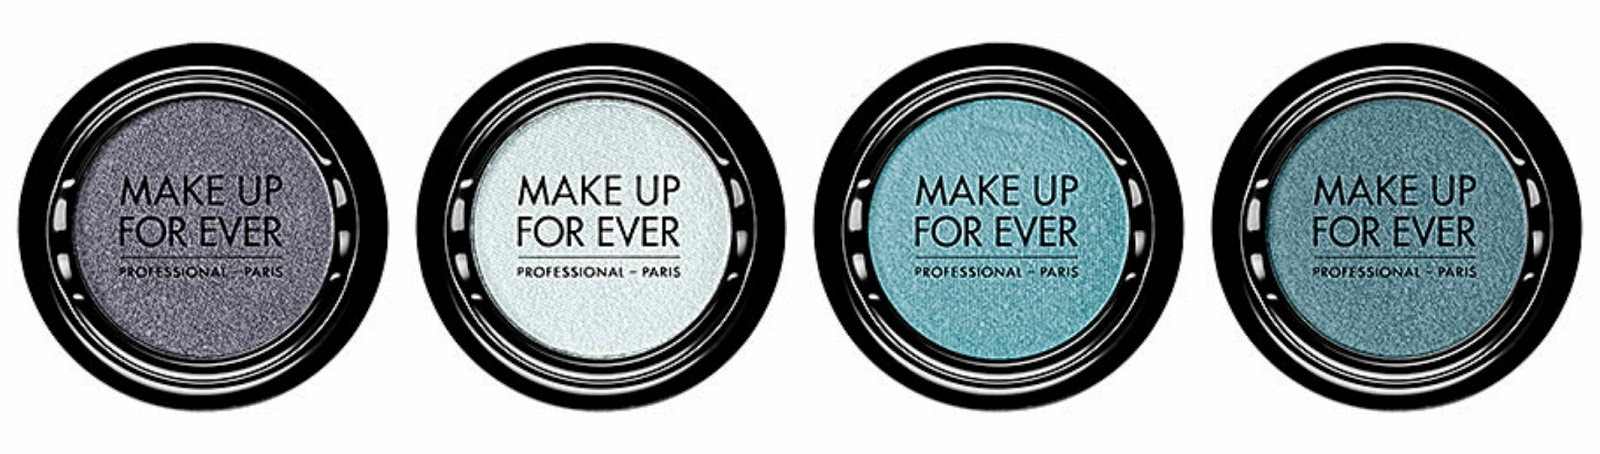 Make Up For Ever Artist Shadow From left: I112 Chrome; I120 Snow Gray; I204 Sky Blue; I210 Light Turquoise